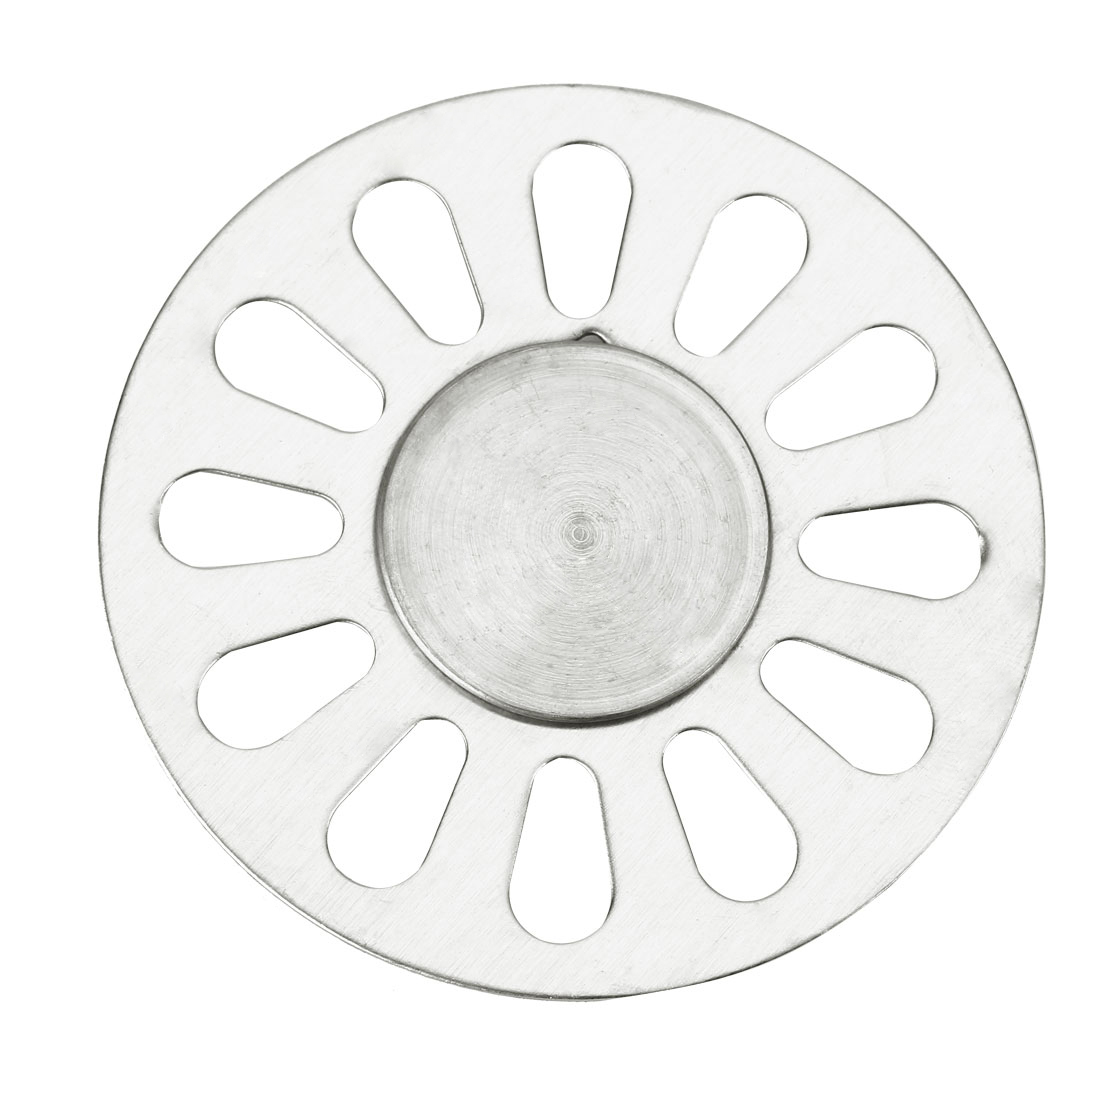 3.07 Inch Floor Drain Cover Snap-in Dual Use Filter Strainer Stopper Bathtub